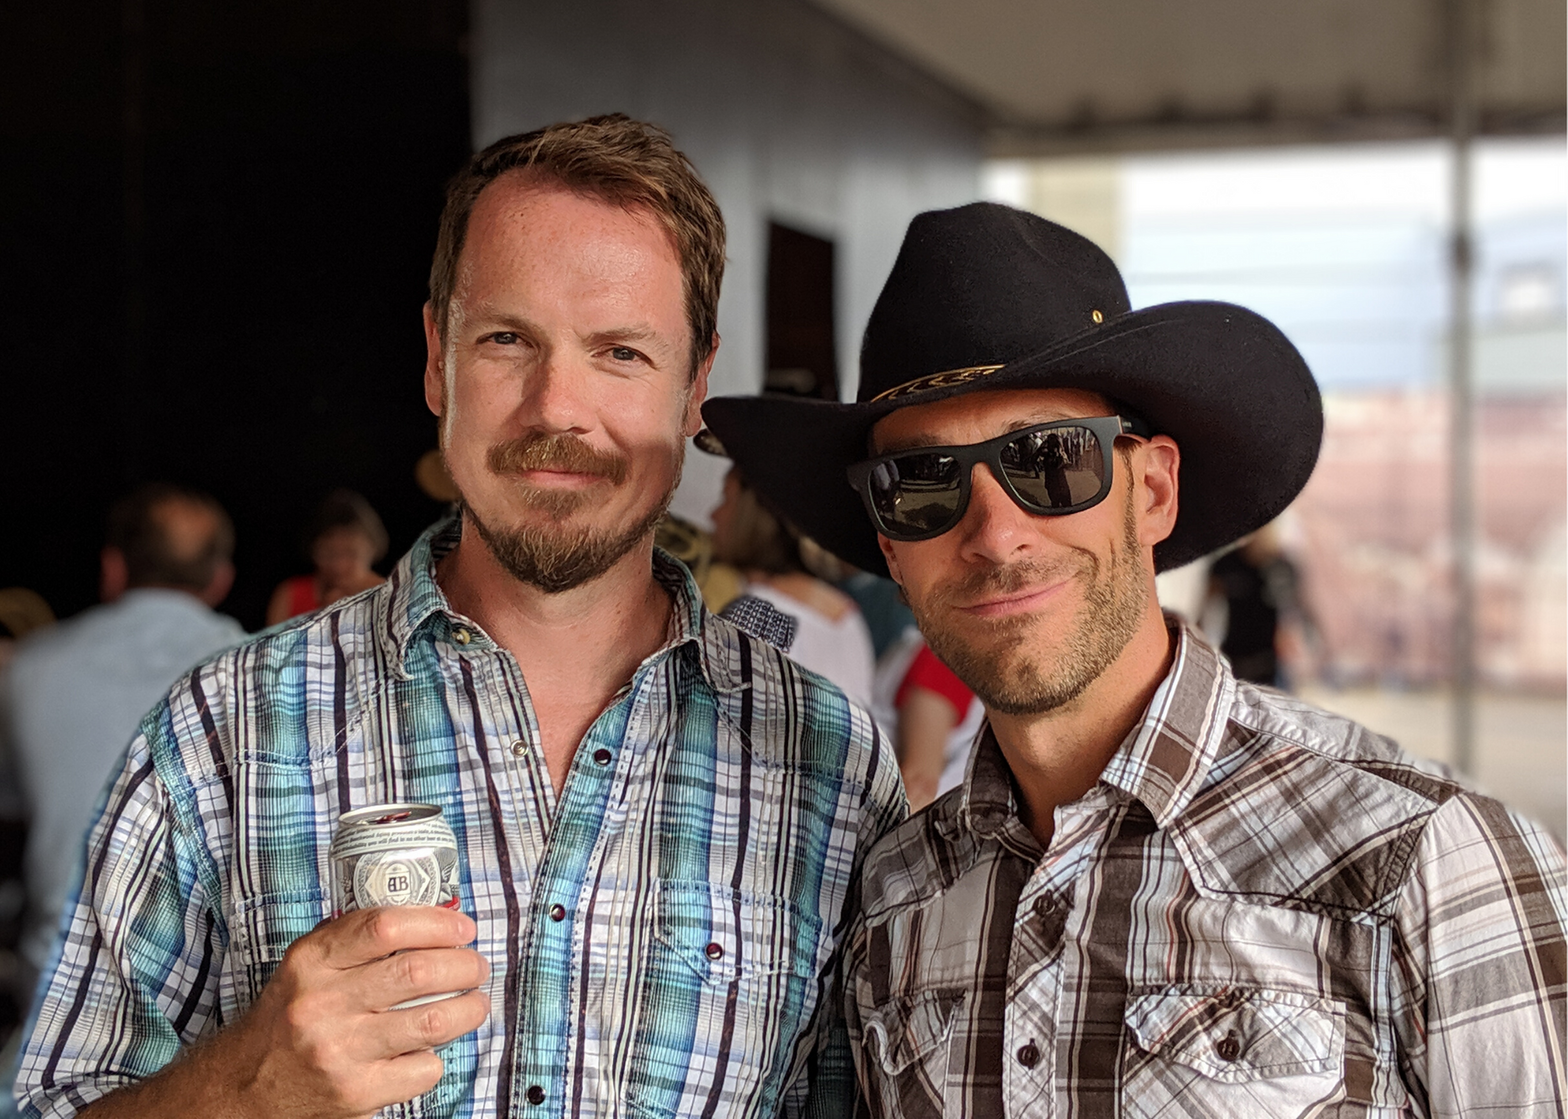 Peter and teammate, Scott at a Calgary Stampede event